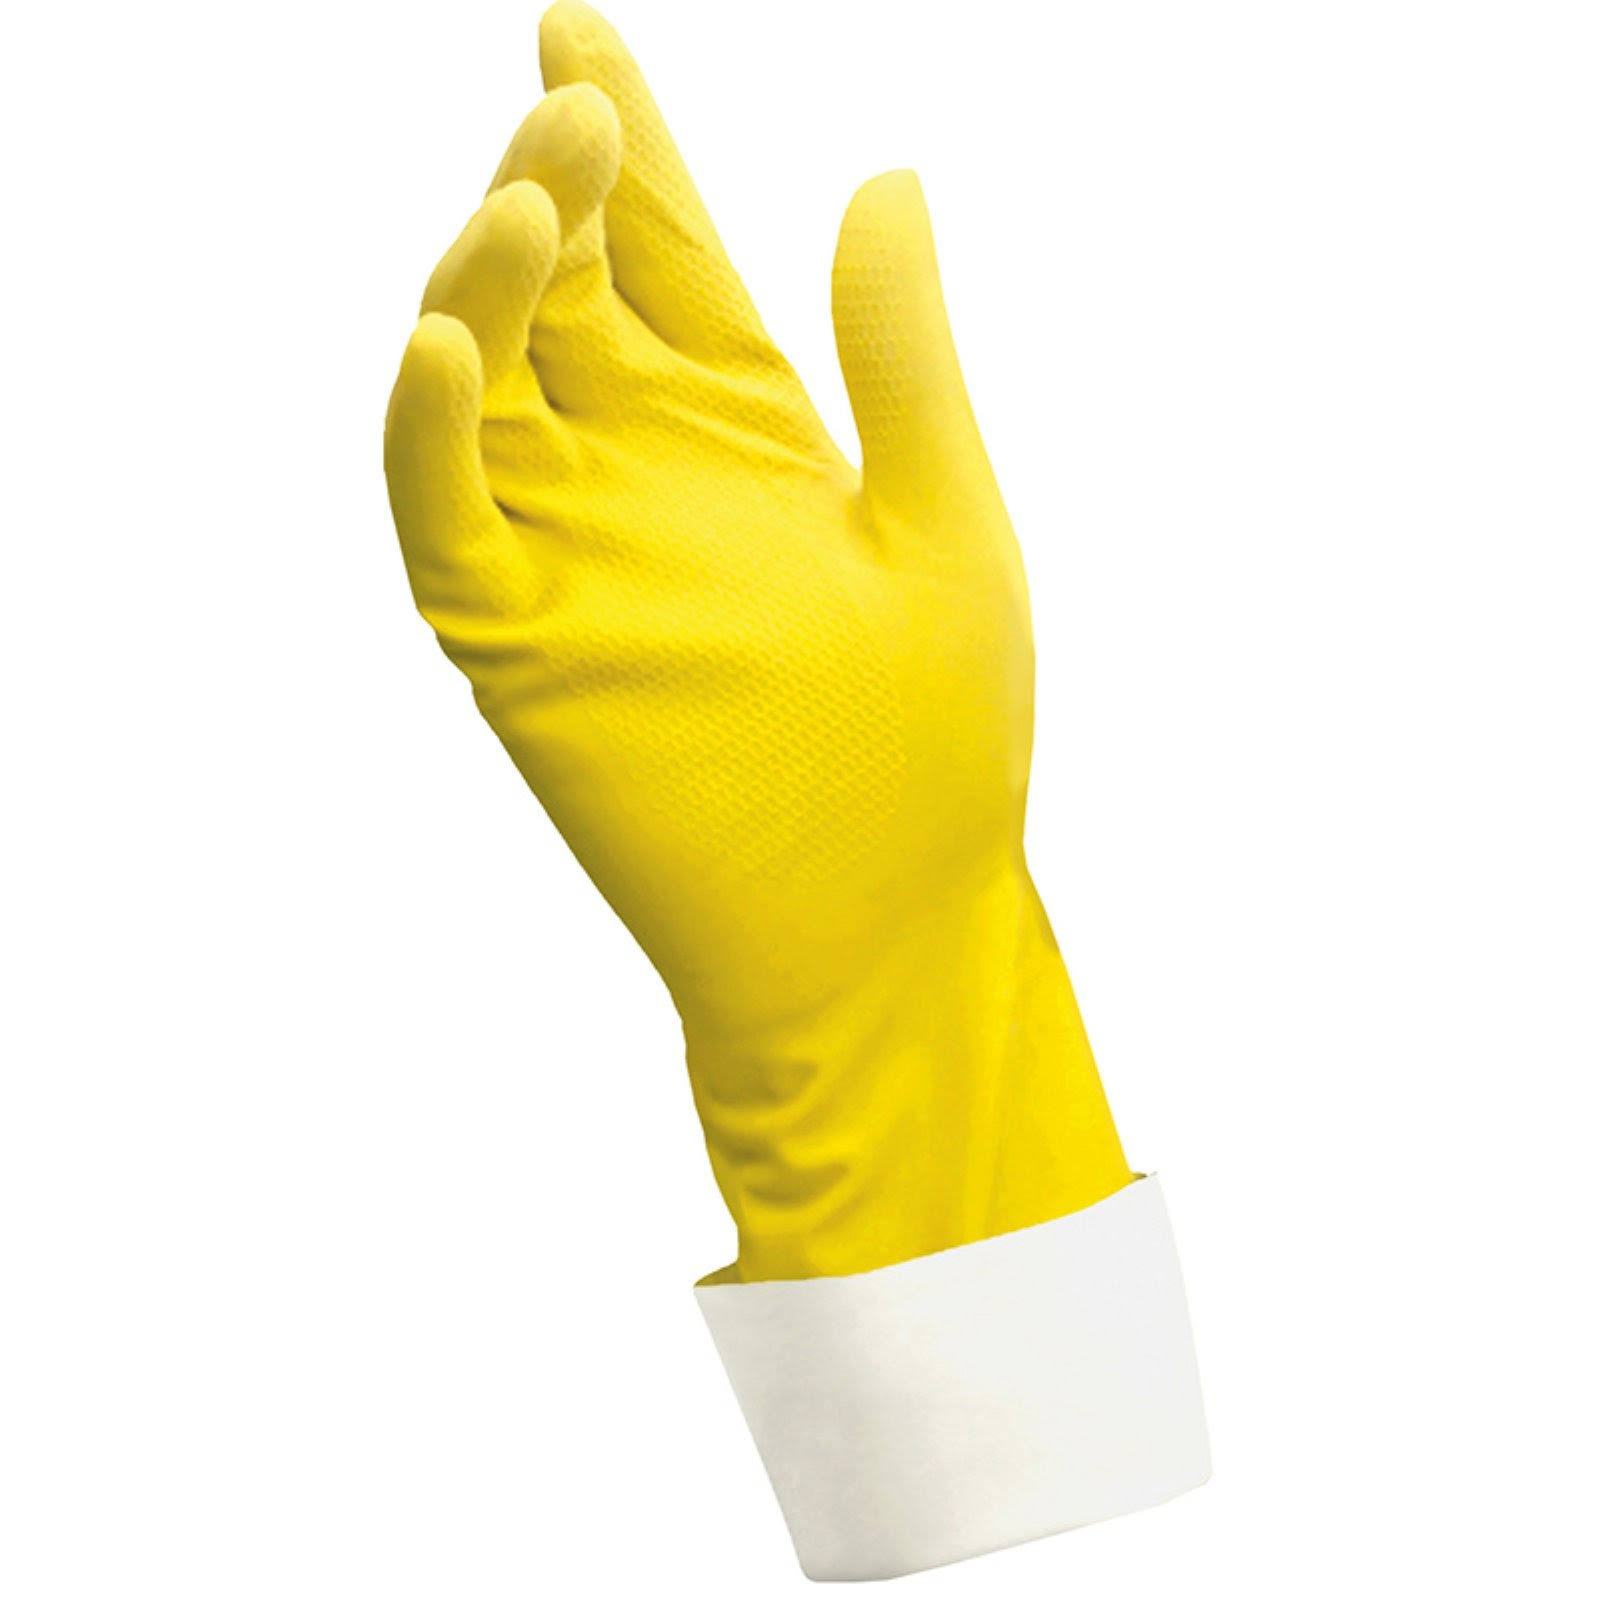 Soft Scrub Premium Latex Gloves - Medium, 2 Pair